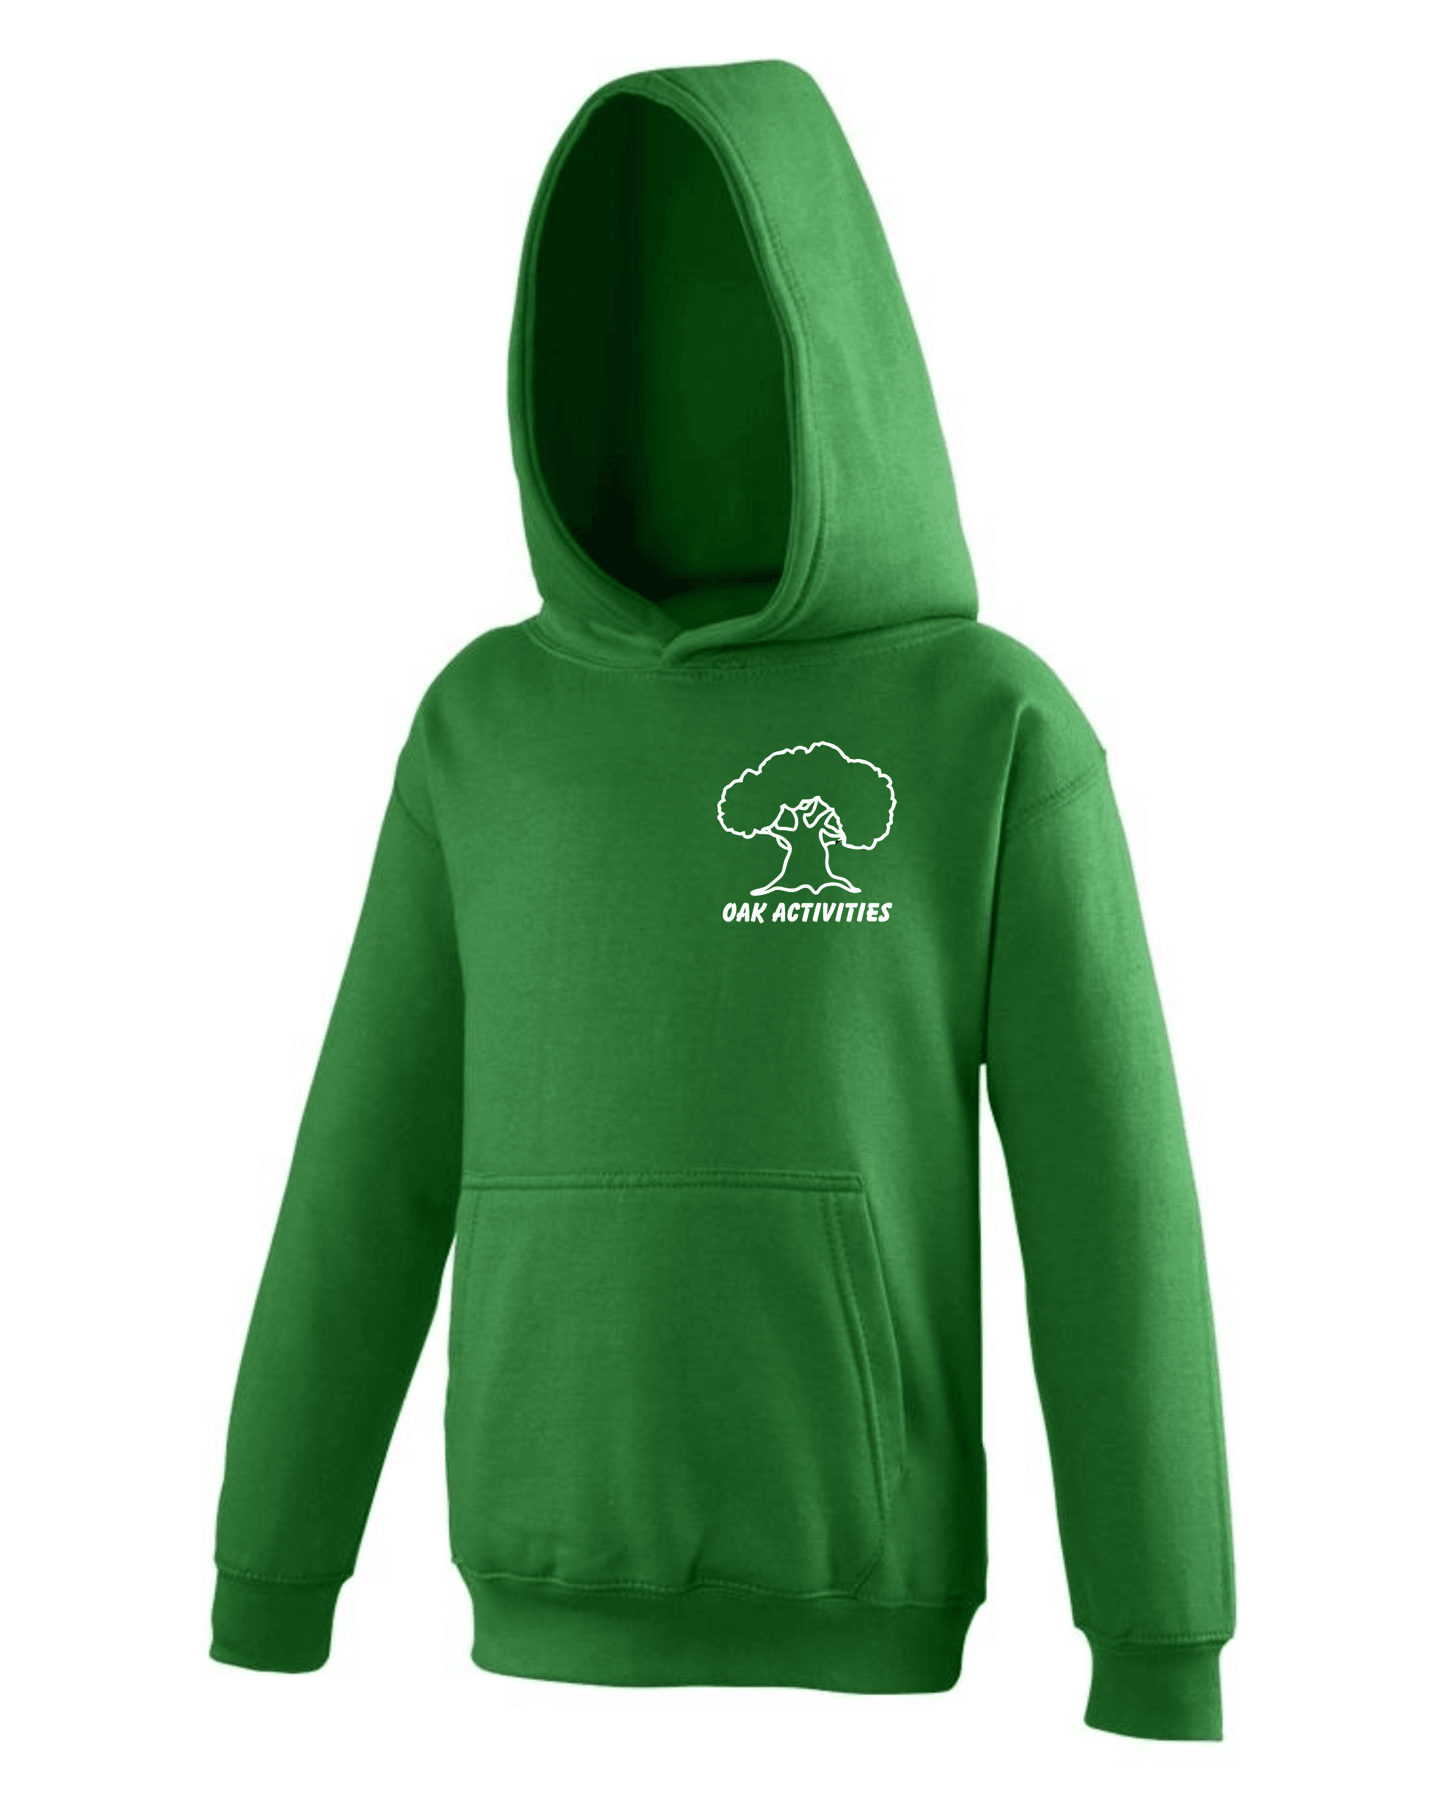 Oak Activities – Kids Hoodie (Green)